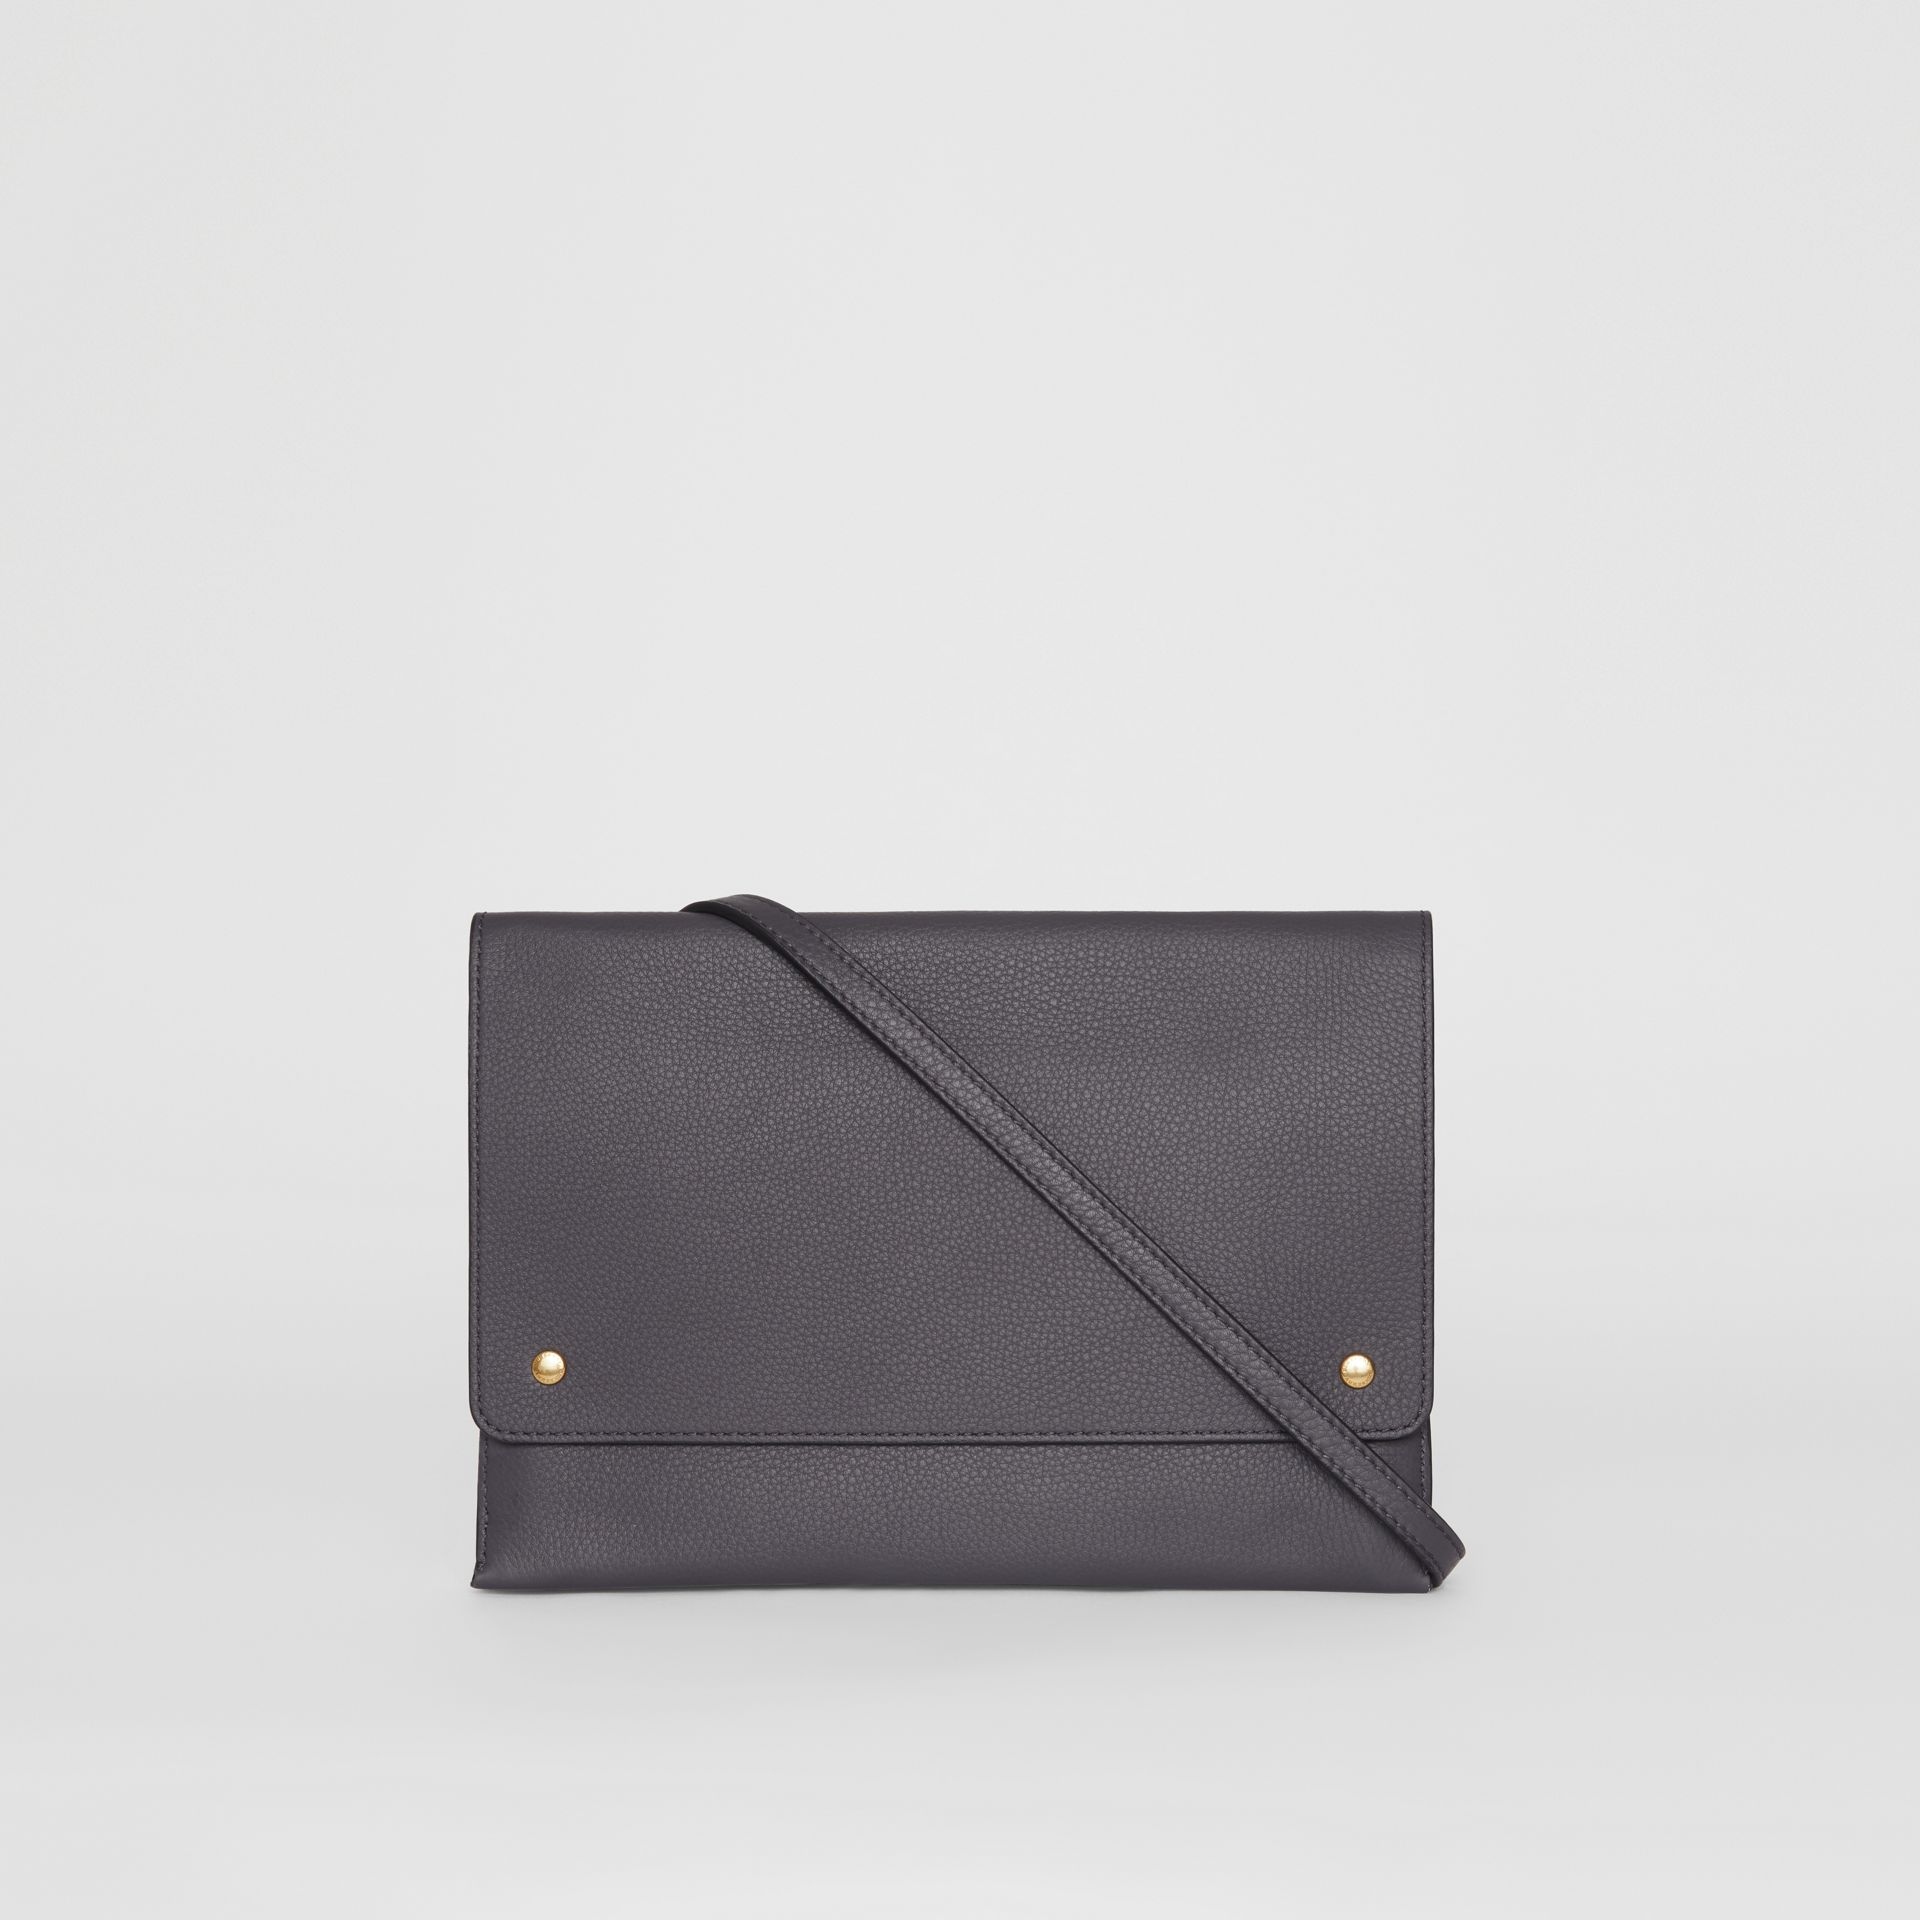 Leather Envelope Crossbody Bag in Charcoal Grey - Women | Burberry Canada - gallery image 5